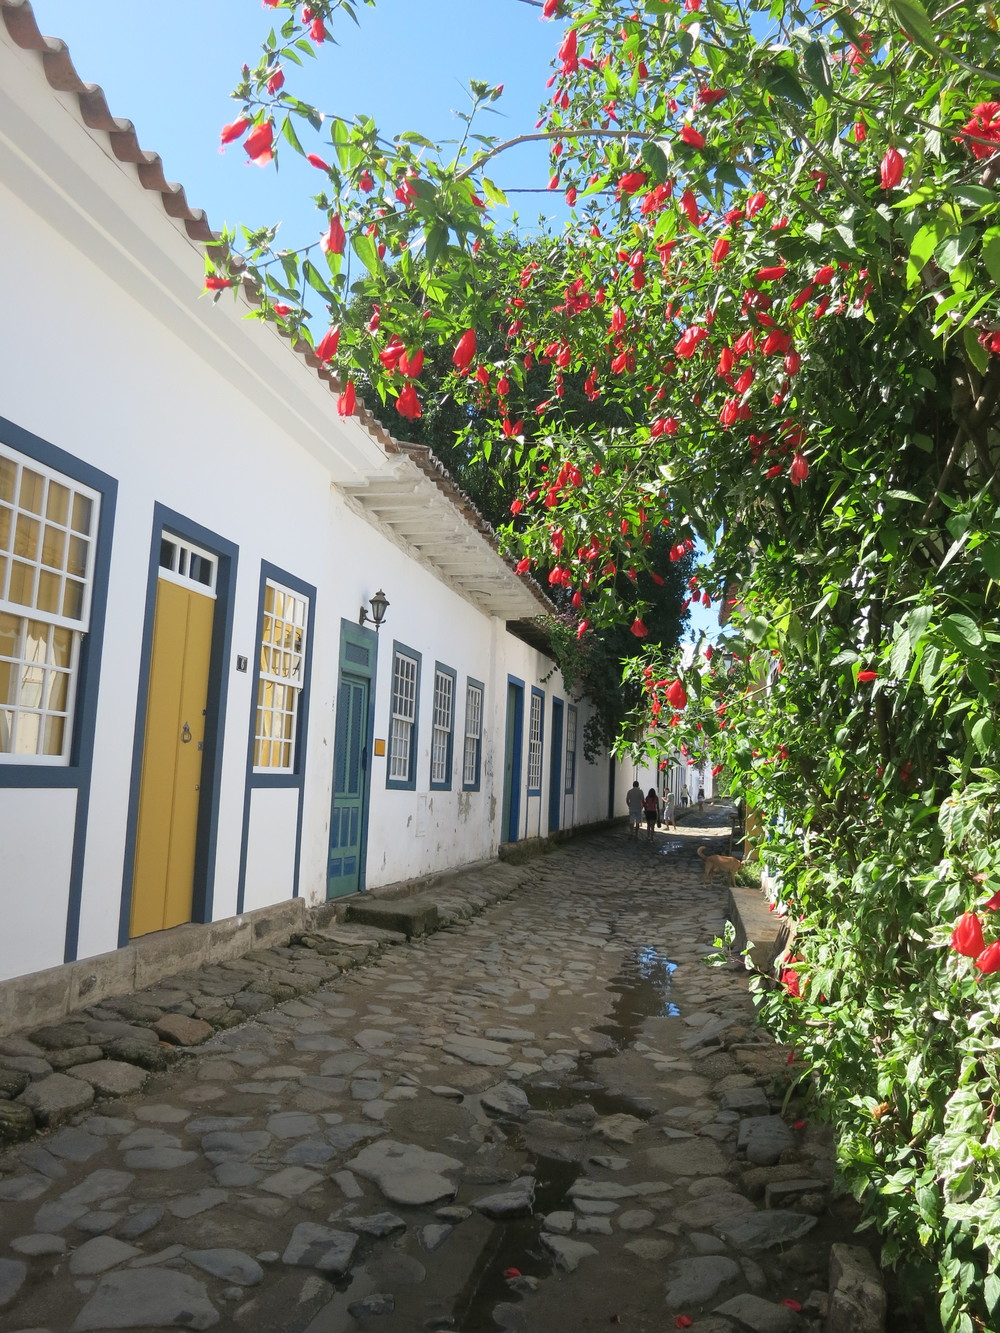 The cobblestone streets of Paraty